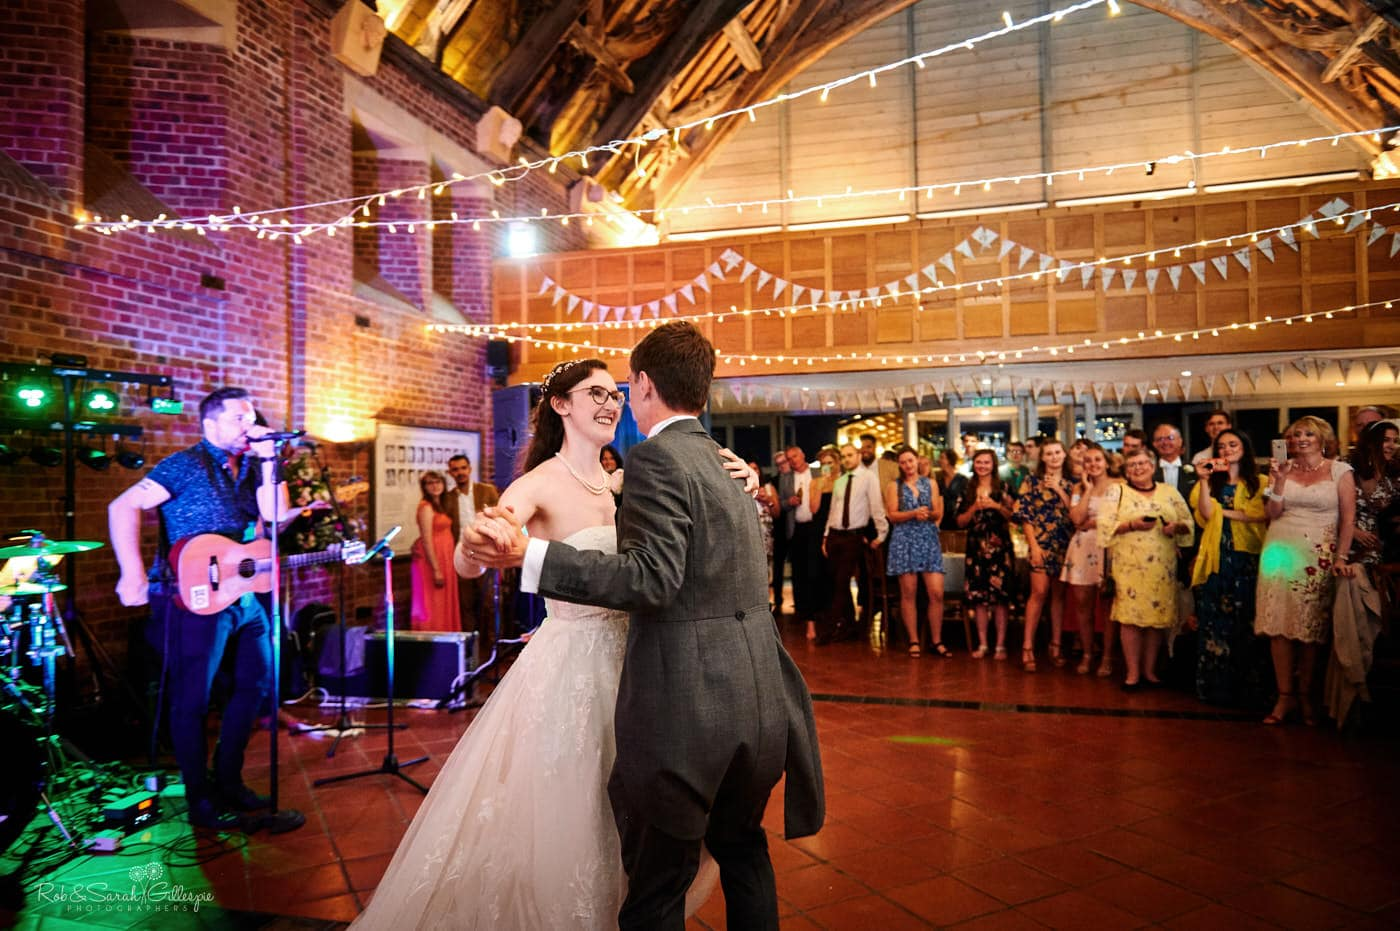 Bride and groom first dance at Avoncroft Museum in Worcestershire